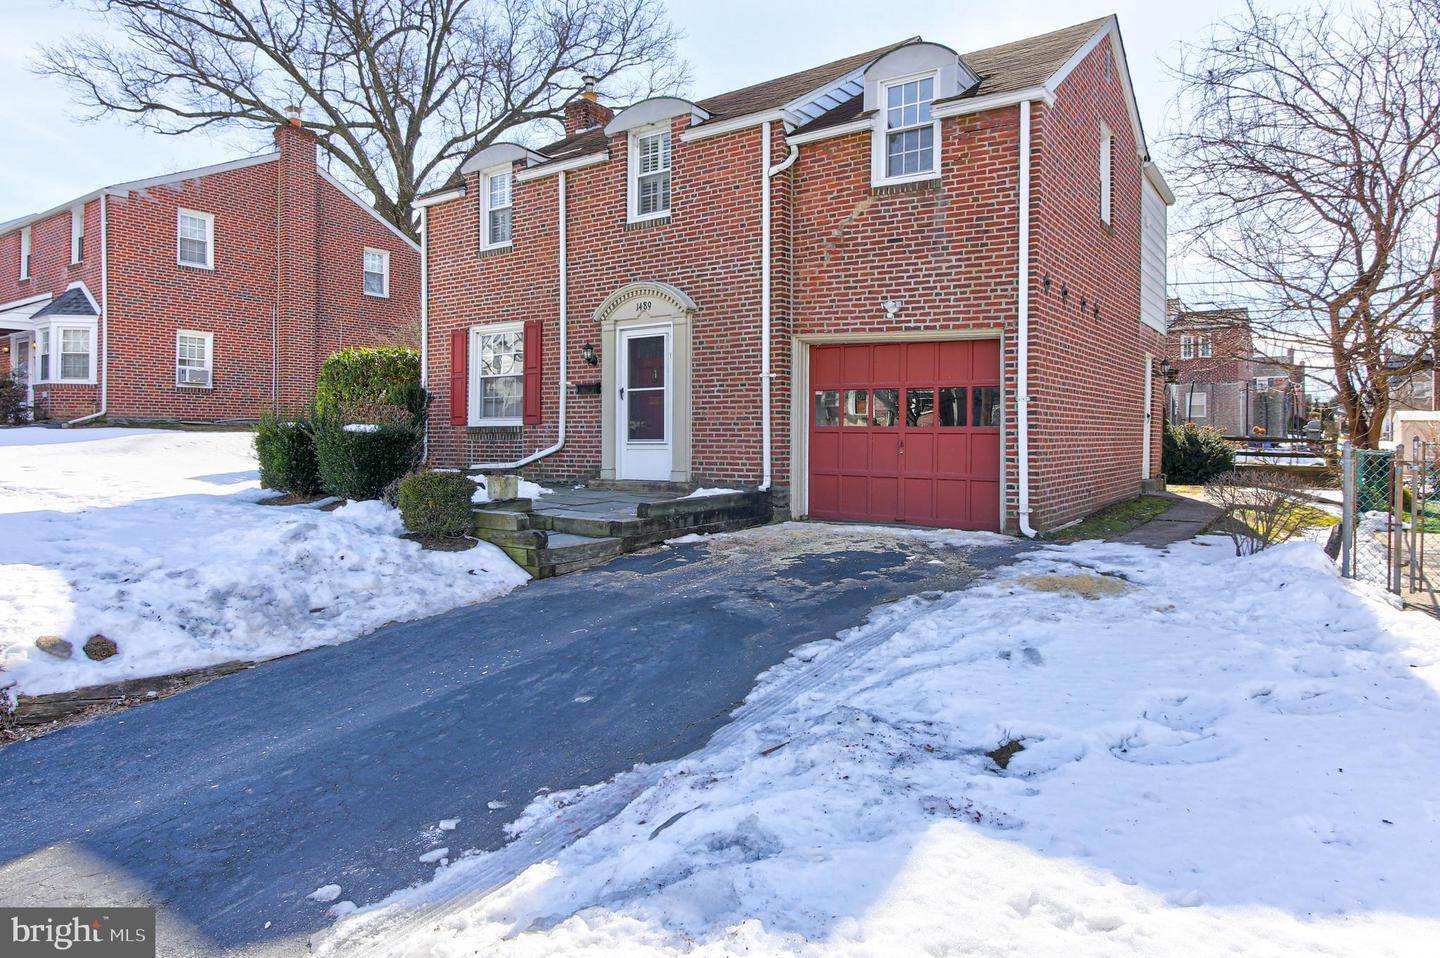 Detached House for Sale at 1489 BURMONT Road Drexel Hill, Pennsylvania 19026 United States